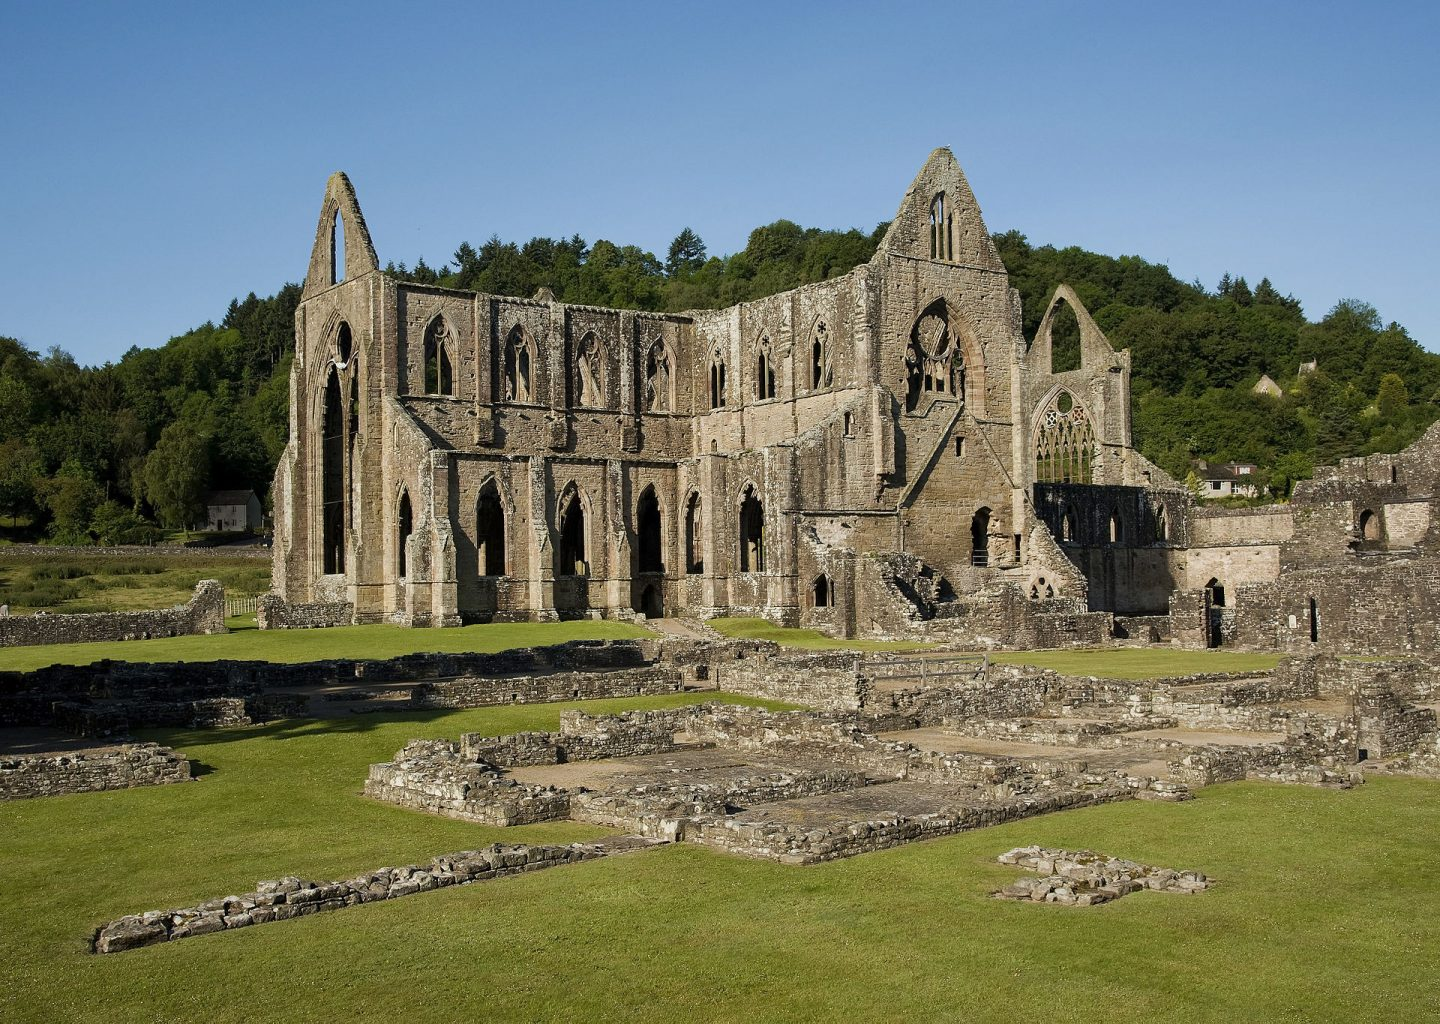 Tintern Abbey, Wales. The 'sister abbey' of Tilty Abbey. By Saffron Blaze - Own work, CC BY-SA 3.0, https://commons.wikimedia.org/w/index.php?curid=15358619